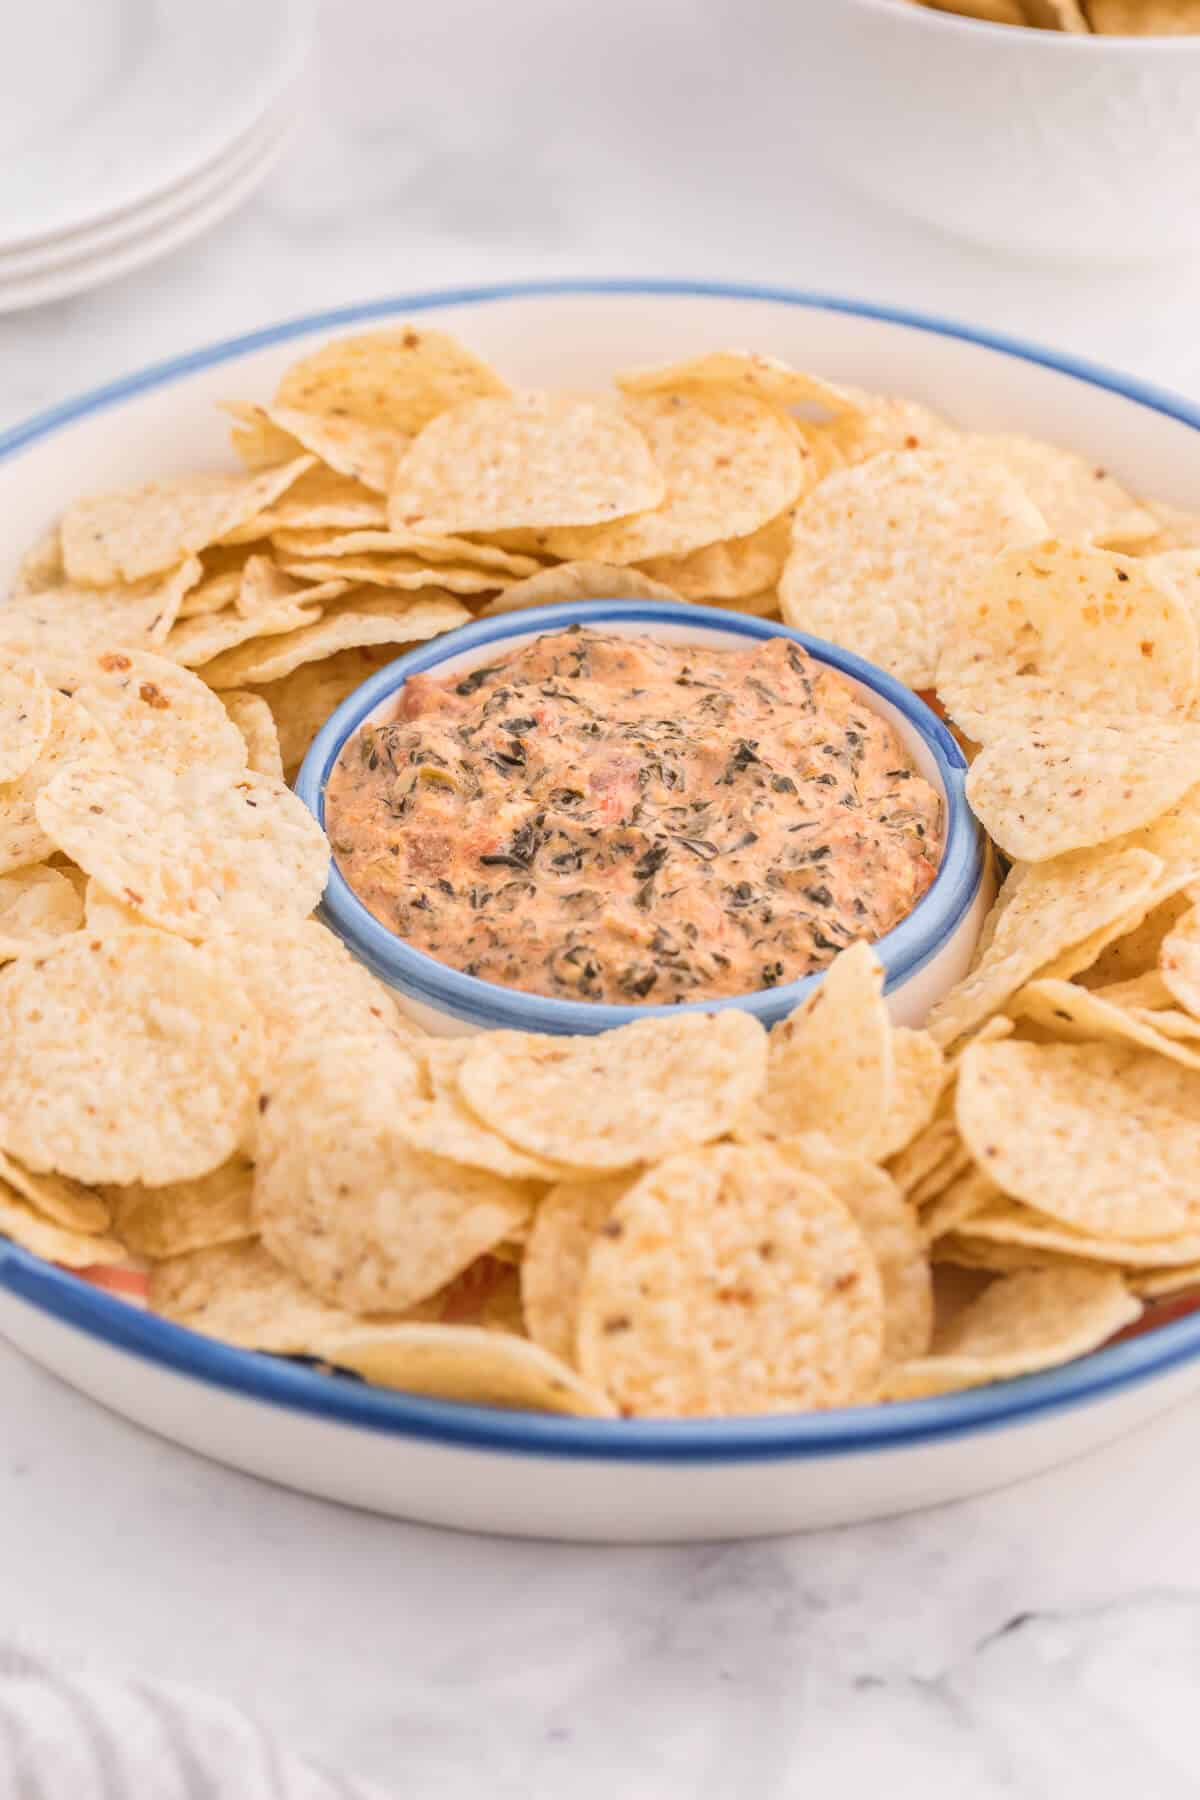 Tex-Mex Spinach Dip - Add a new kick to your classic spinach dip recipe! This appetizer is super creamy with just 5 ingredients. Just dump, heat, and serve.